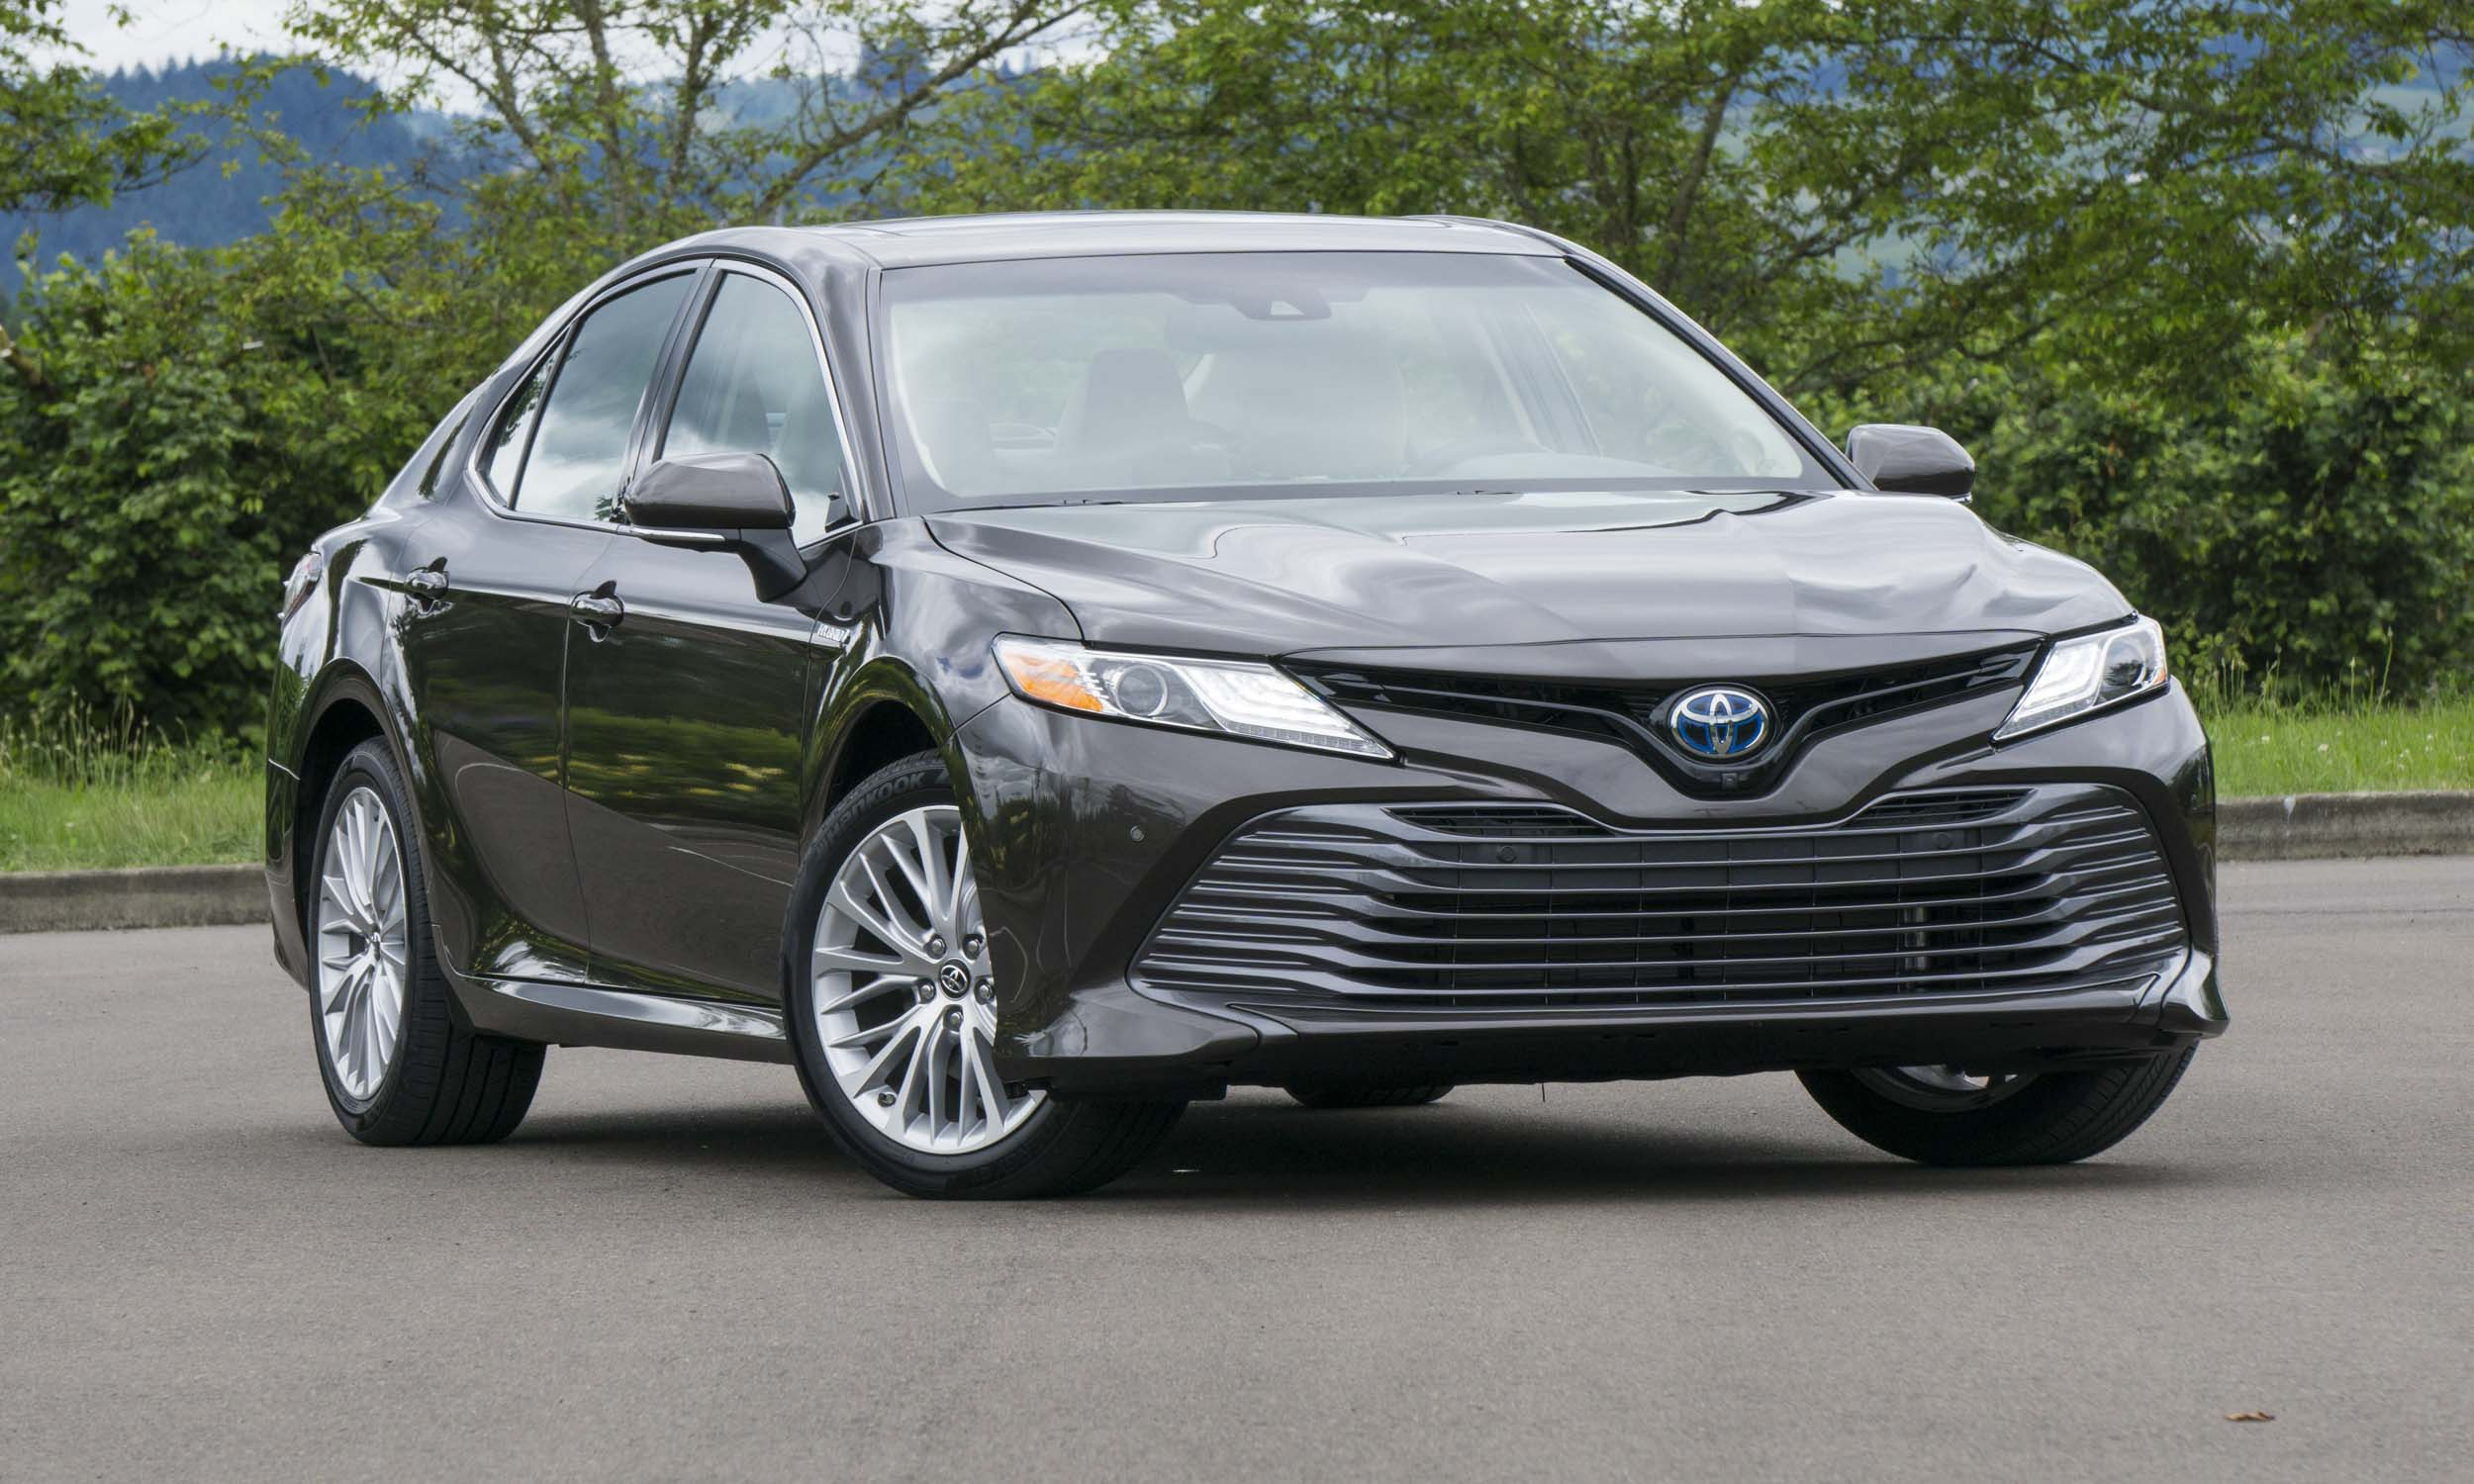 2018 Toyota Camry Xse Price >> 2018 Toyota Camry: First Drive Review - » AutoNXT